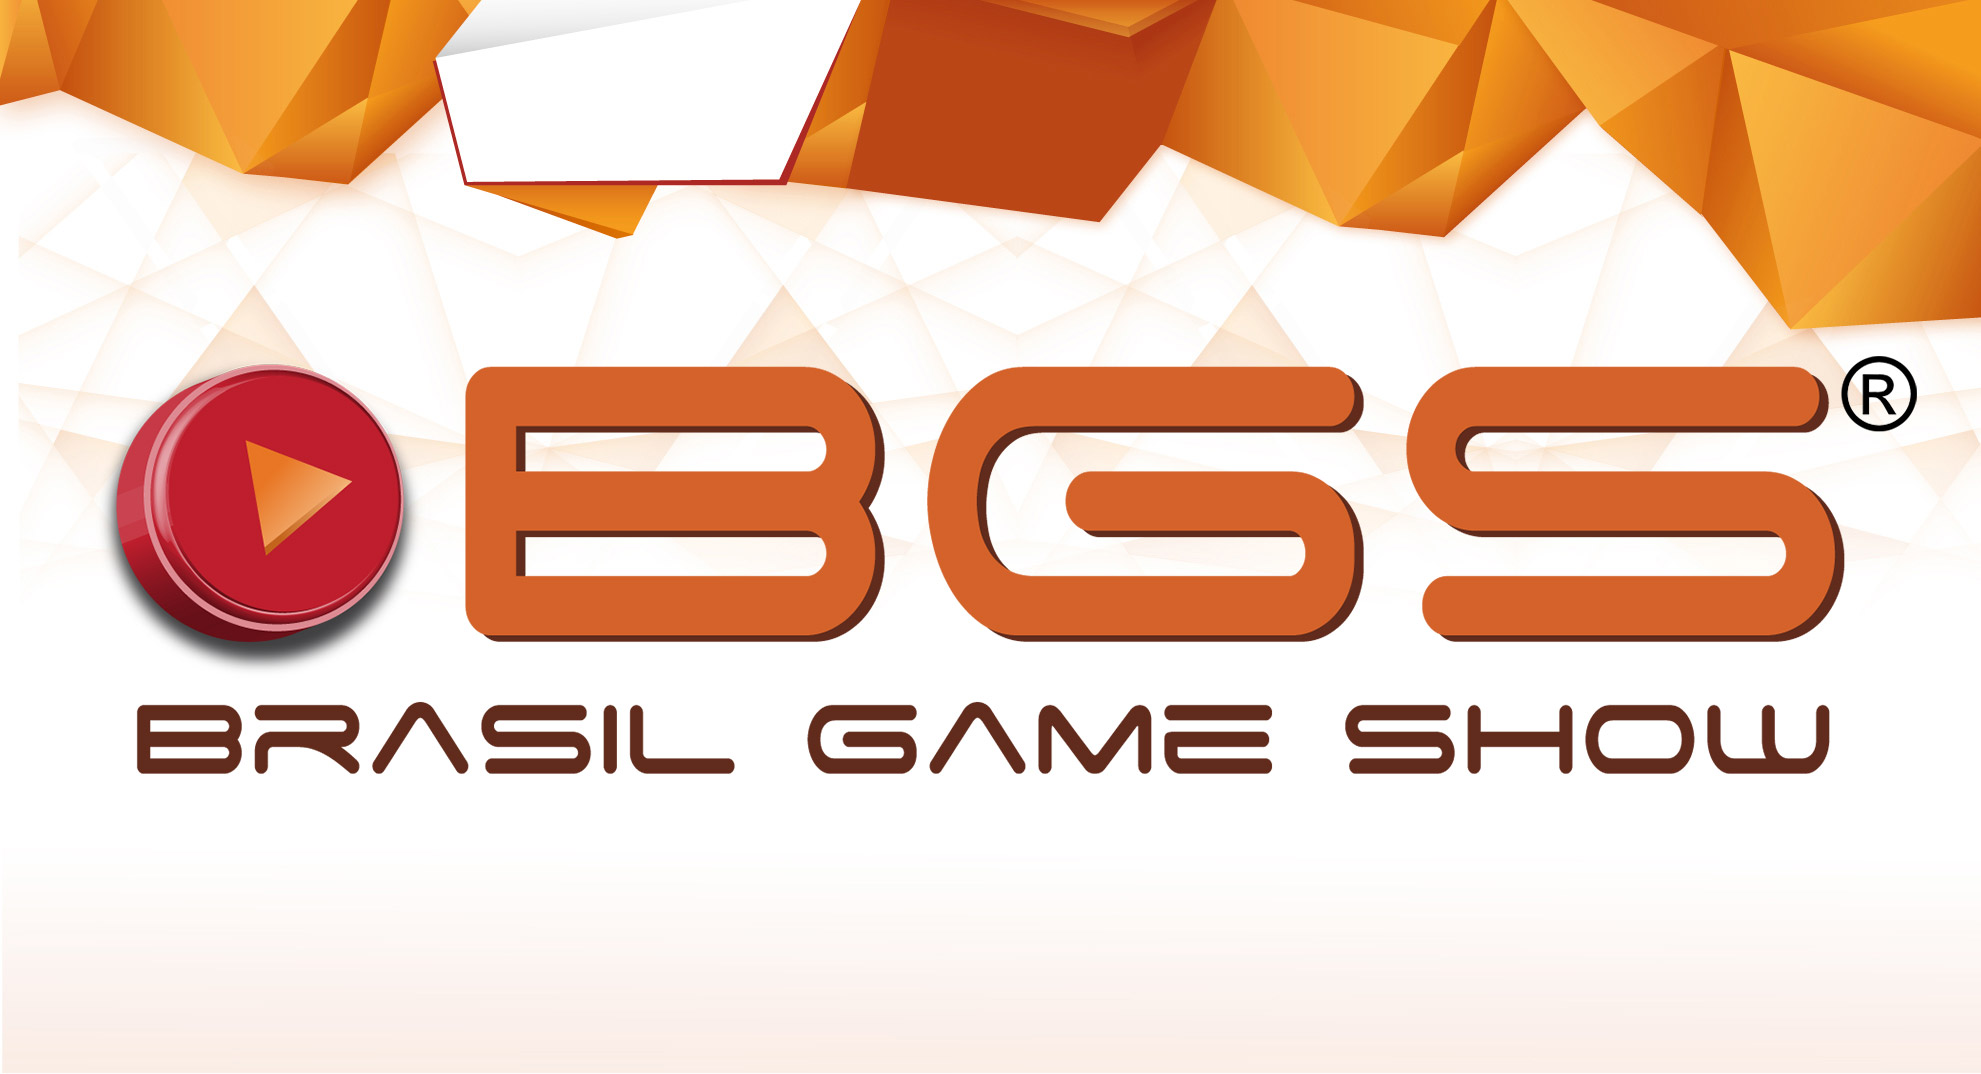 bgs 2015 brasil game show muda de data e local para 2016 procrastination. Black Bedroom Furniture Sets. Home Design Ideas